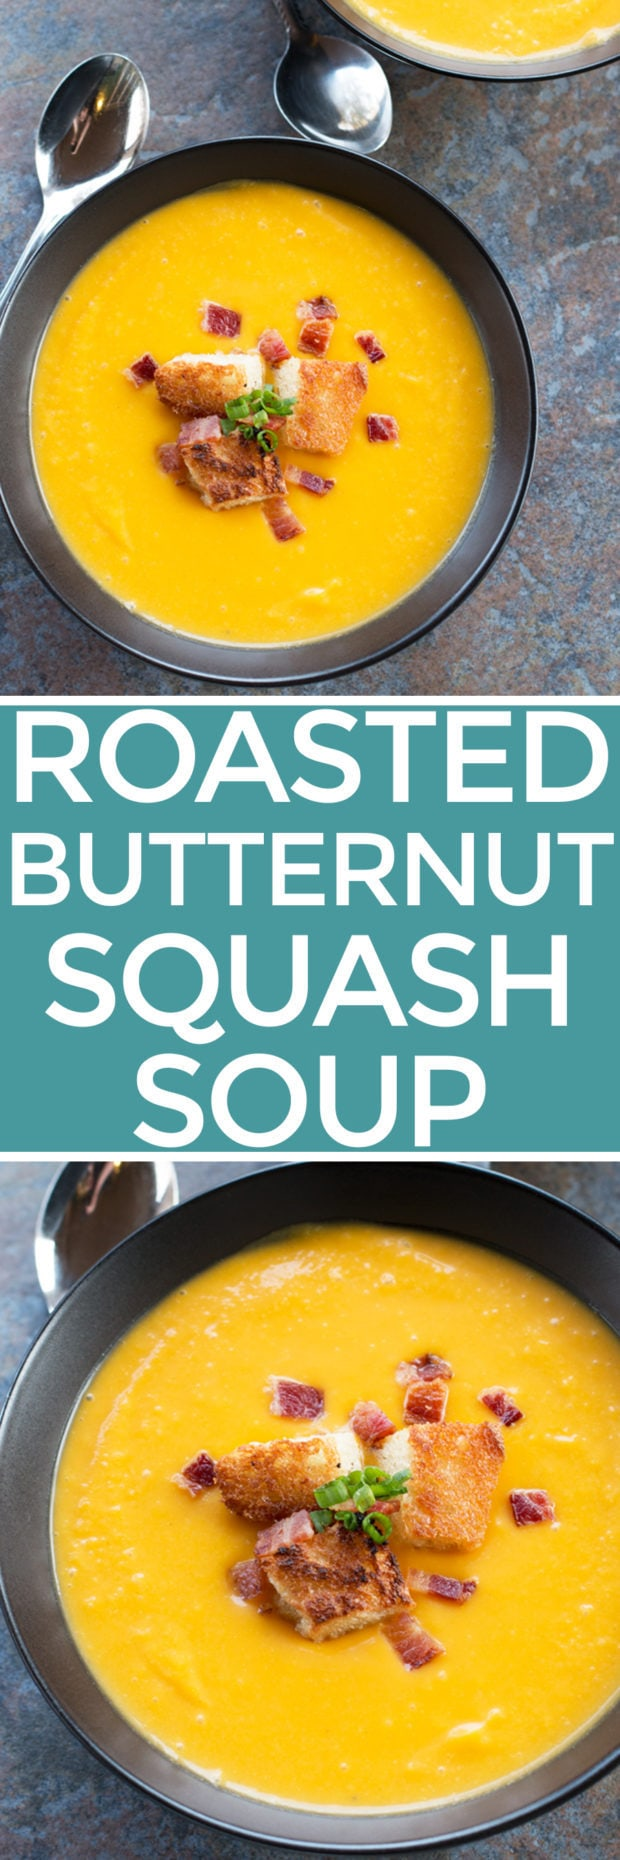 Roasted Butternut Squash Soup with Bacon Fat Croutons | cakenknife.com #soup #butternutsquash #bacon #croutons #thanksgiving #christmas